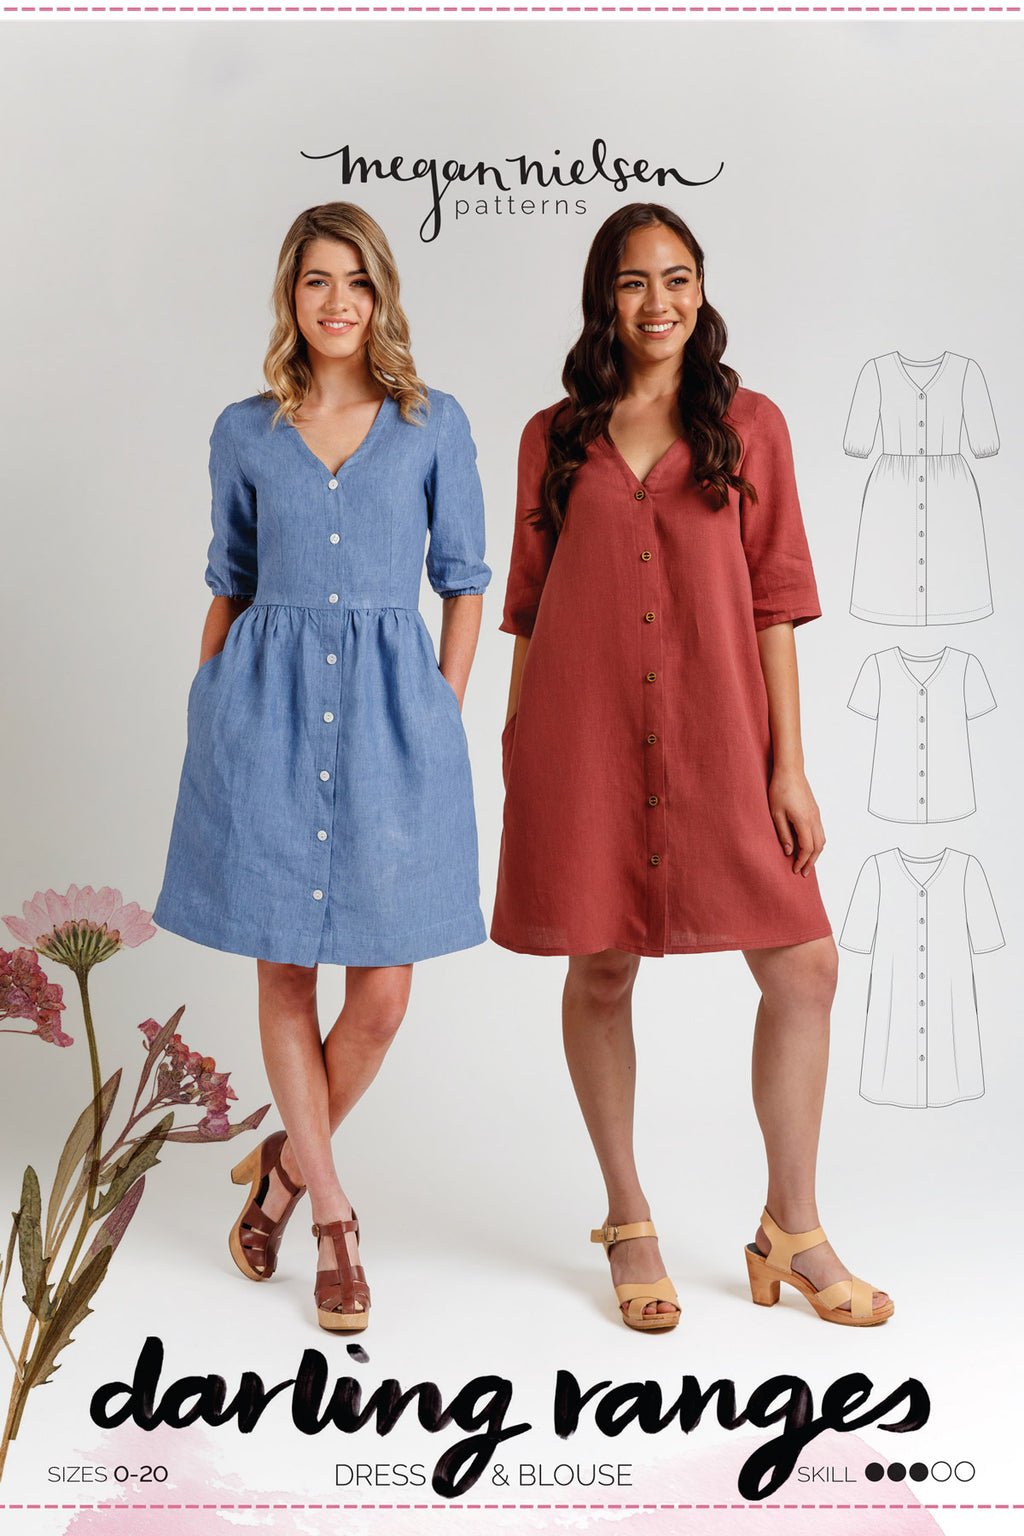 Megan Nielsen Darling Ranges Dress & Blouse